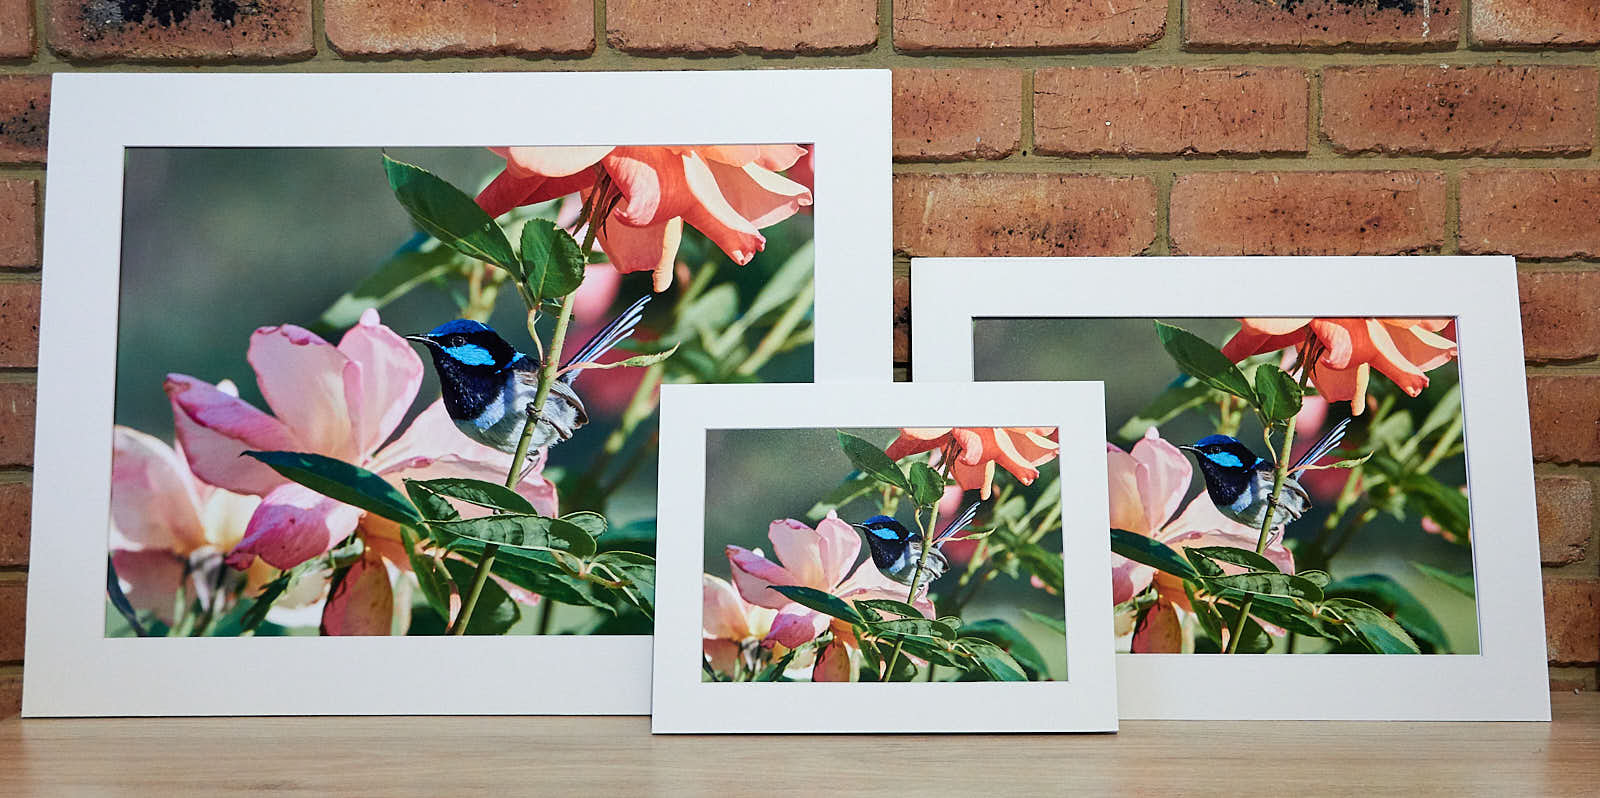 FINE ART PRINTS A4, A3, A2    Printed on Fine art Rag paper and framed with Ma  t Board and foam core backing. Can be hung as is or framed.